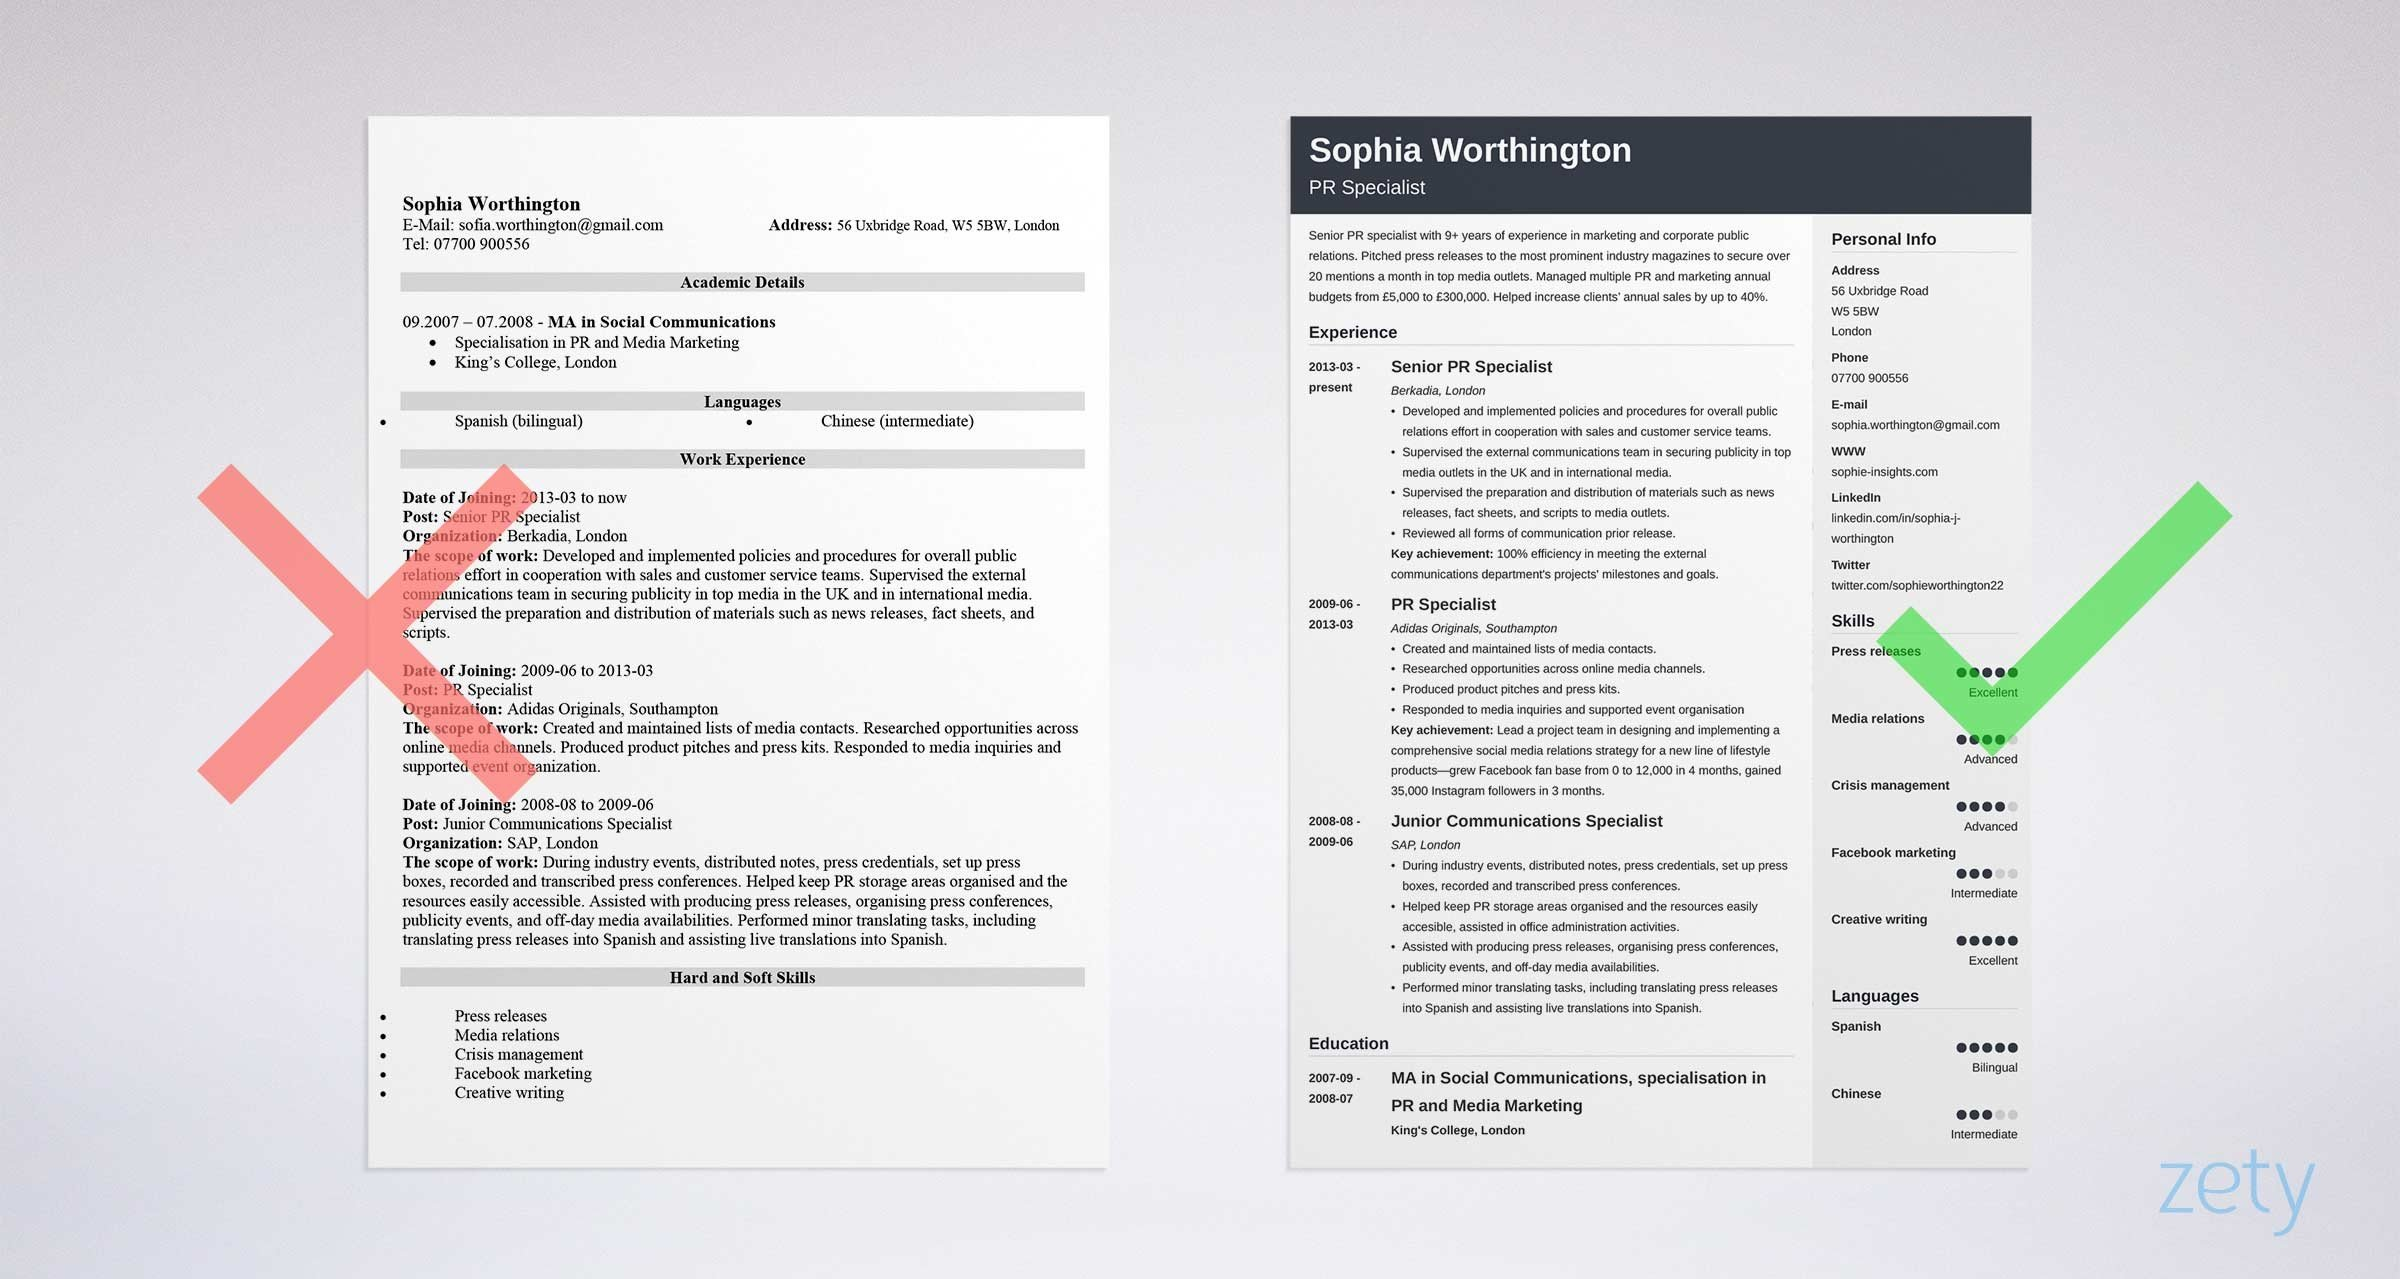 cv format  the best structure for a curriculum vitae  30